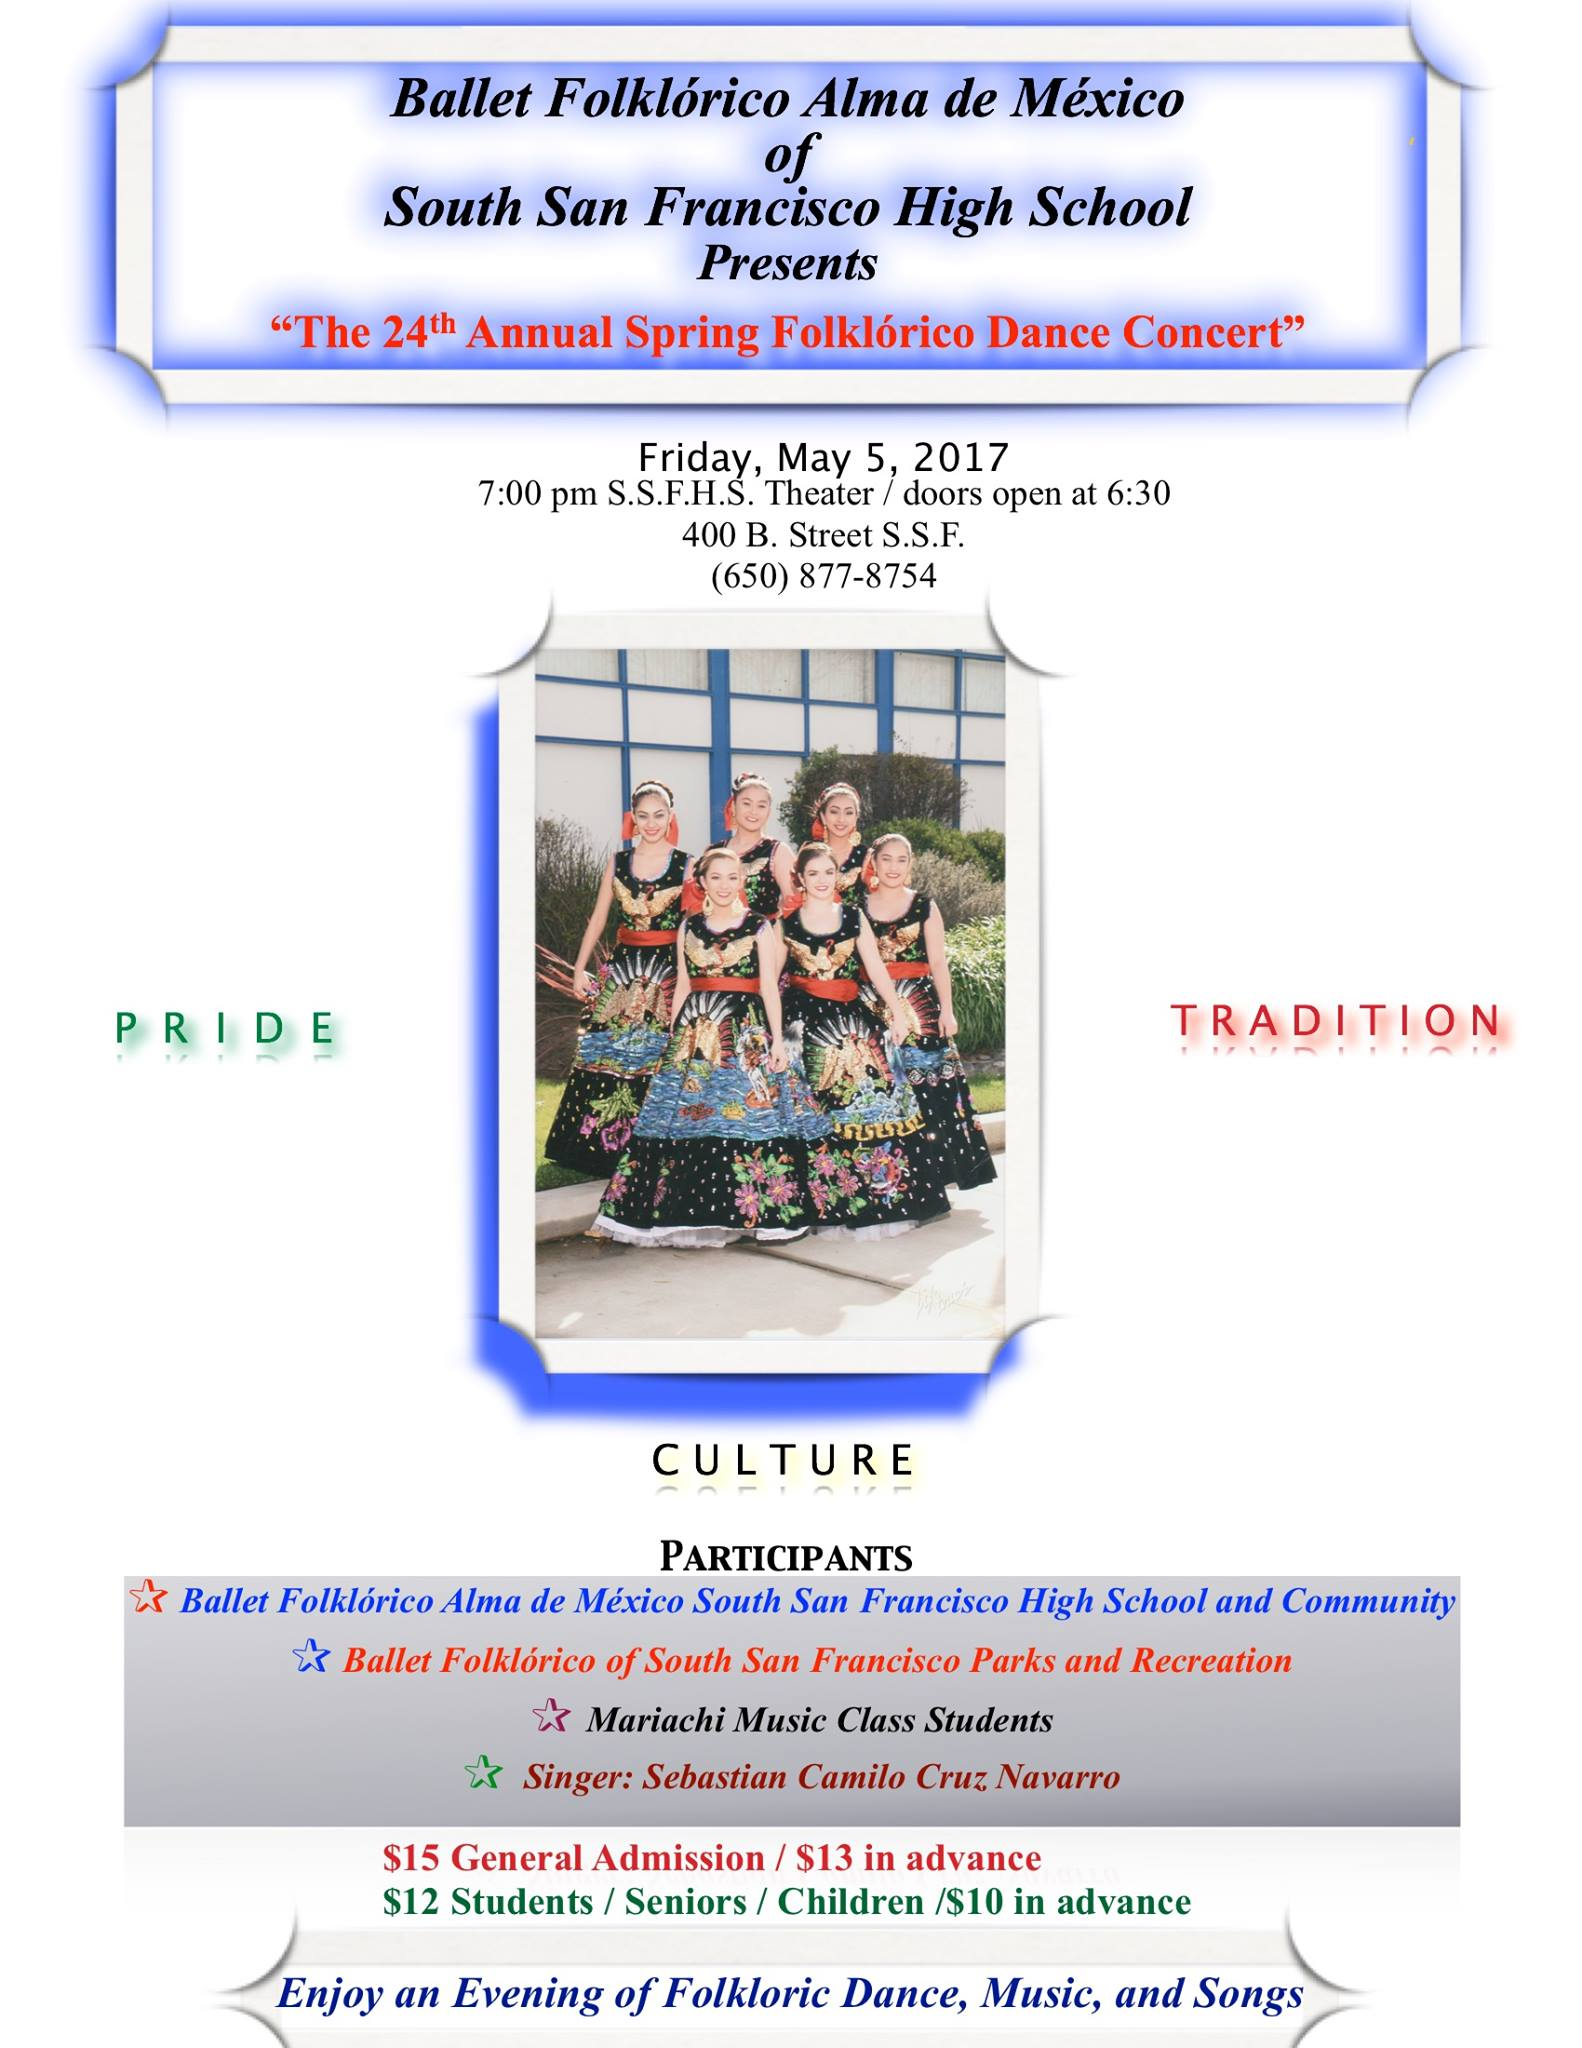 Public Invited to the 24th Spring Folklorico Show on May 5th at SSFHS